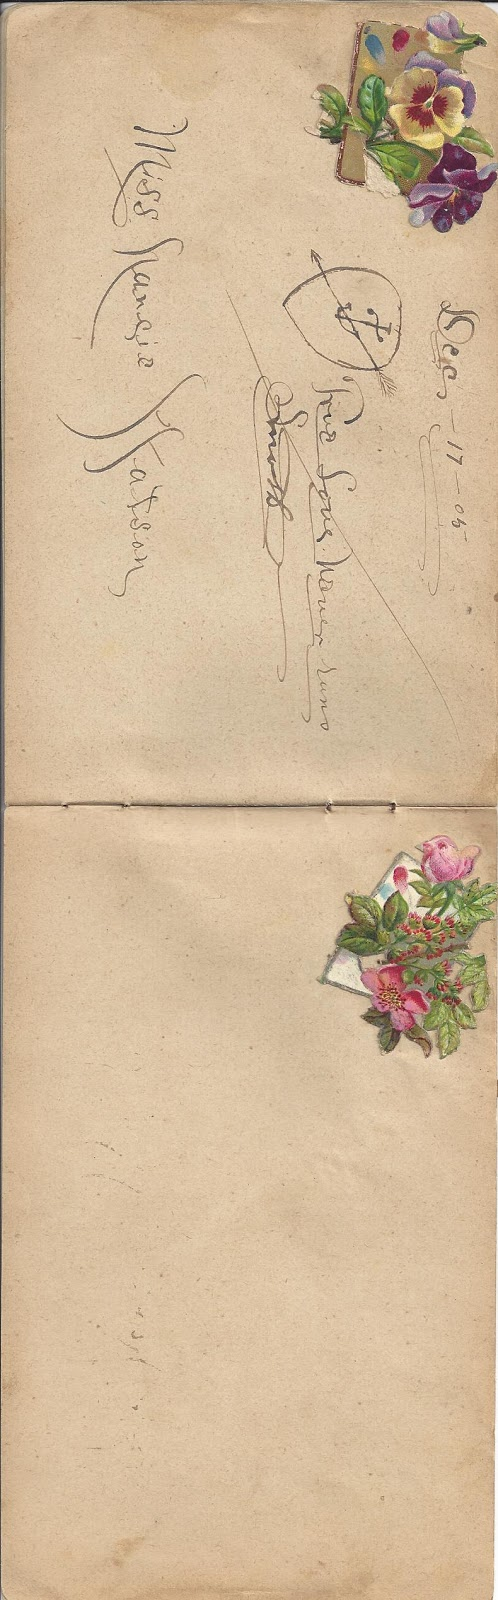 Tea with LaVera: Free Clip Art (An Autograph book from the 1898).